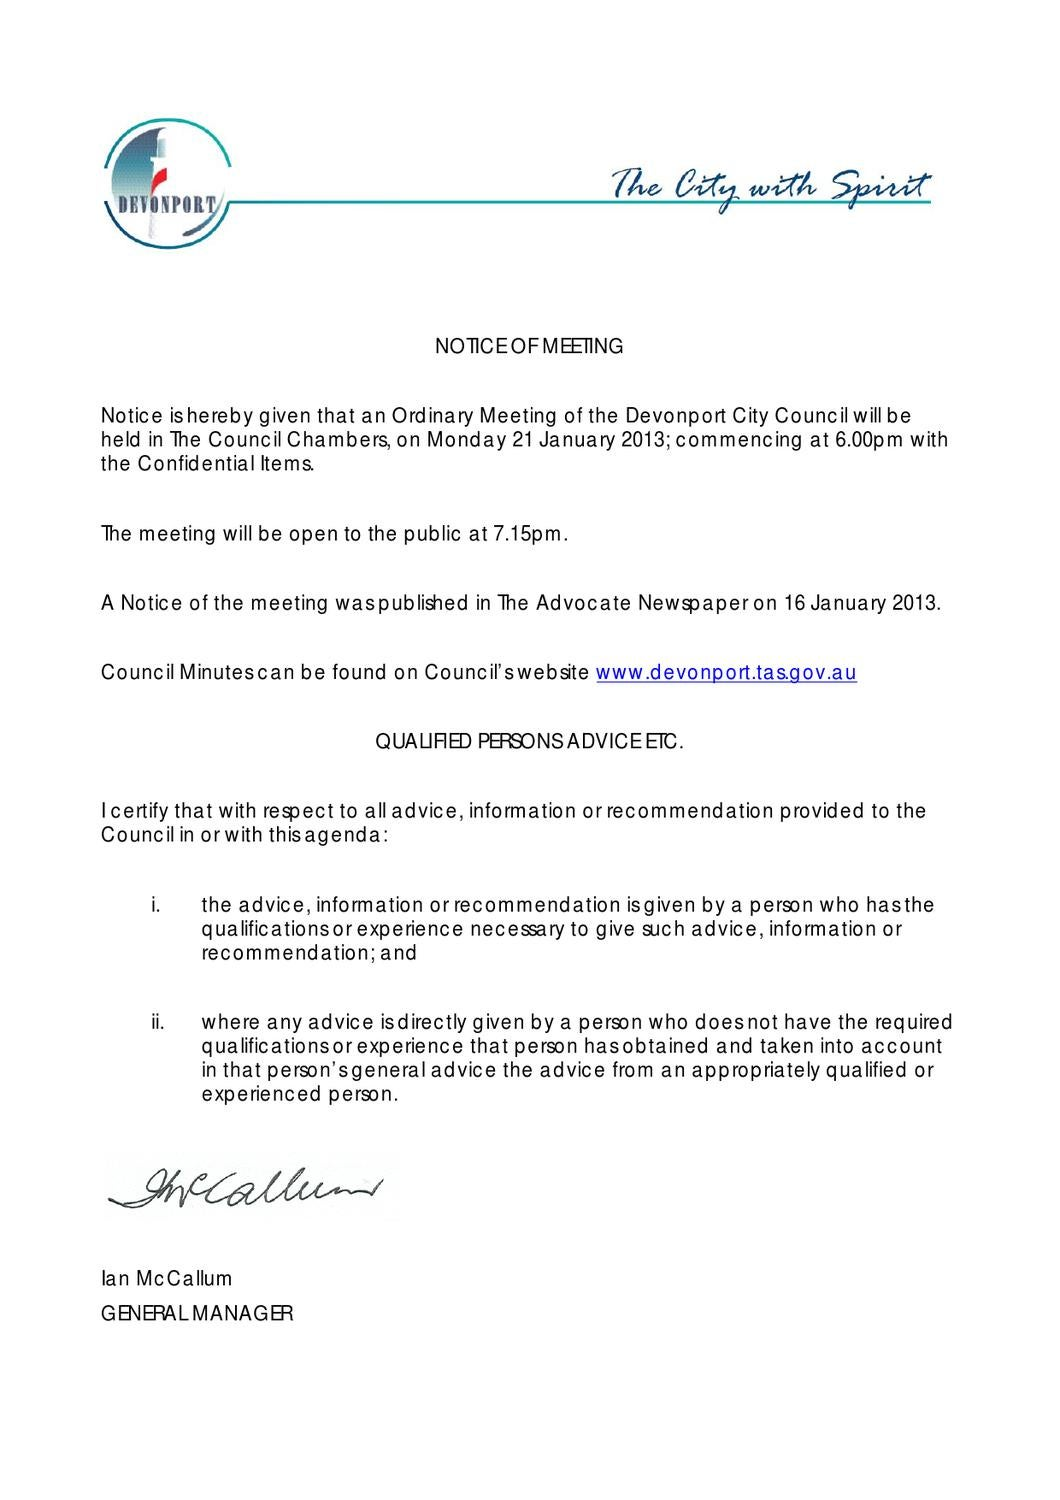 Agenda Council Meeting - 21 January 2013 by Devonport City